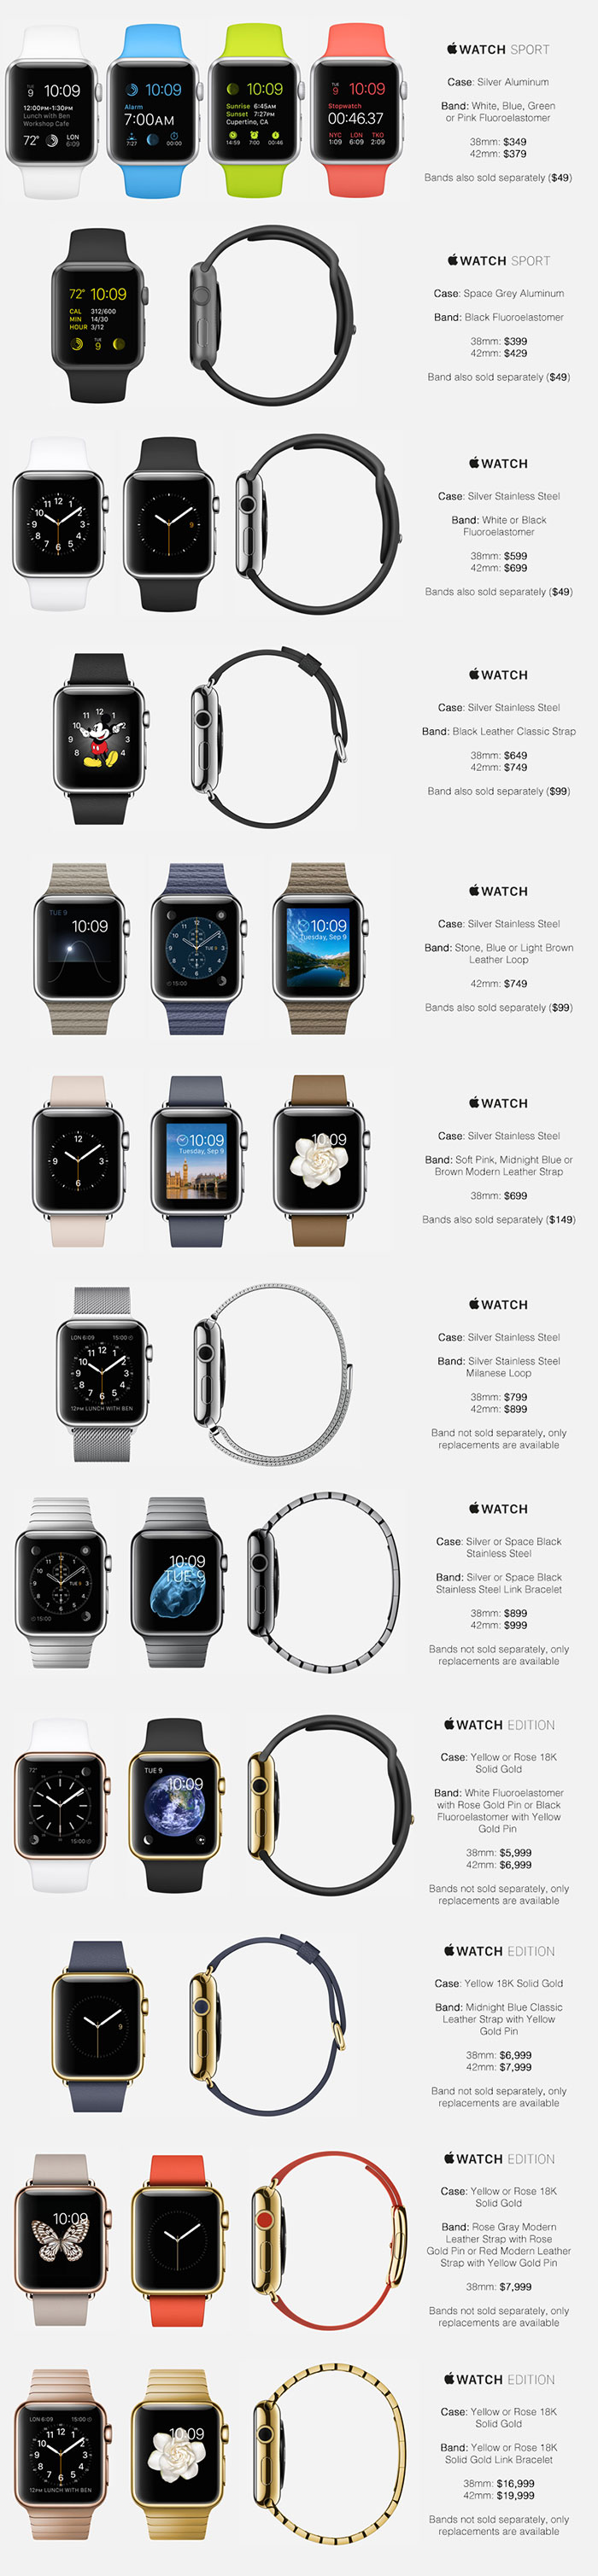 apple-watch-preis